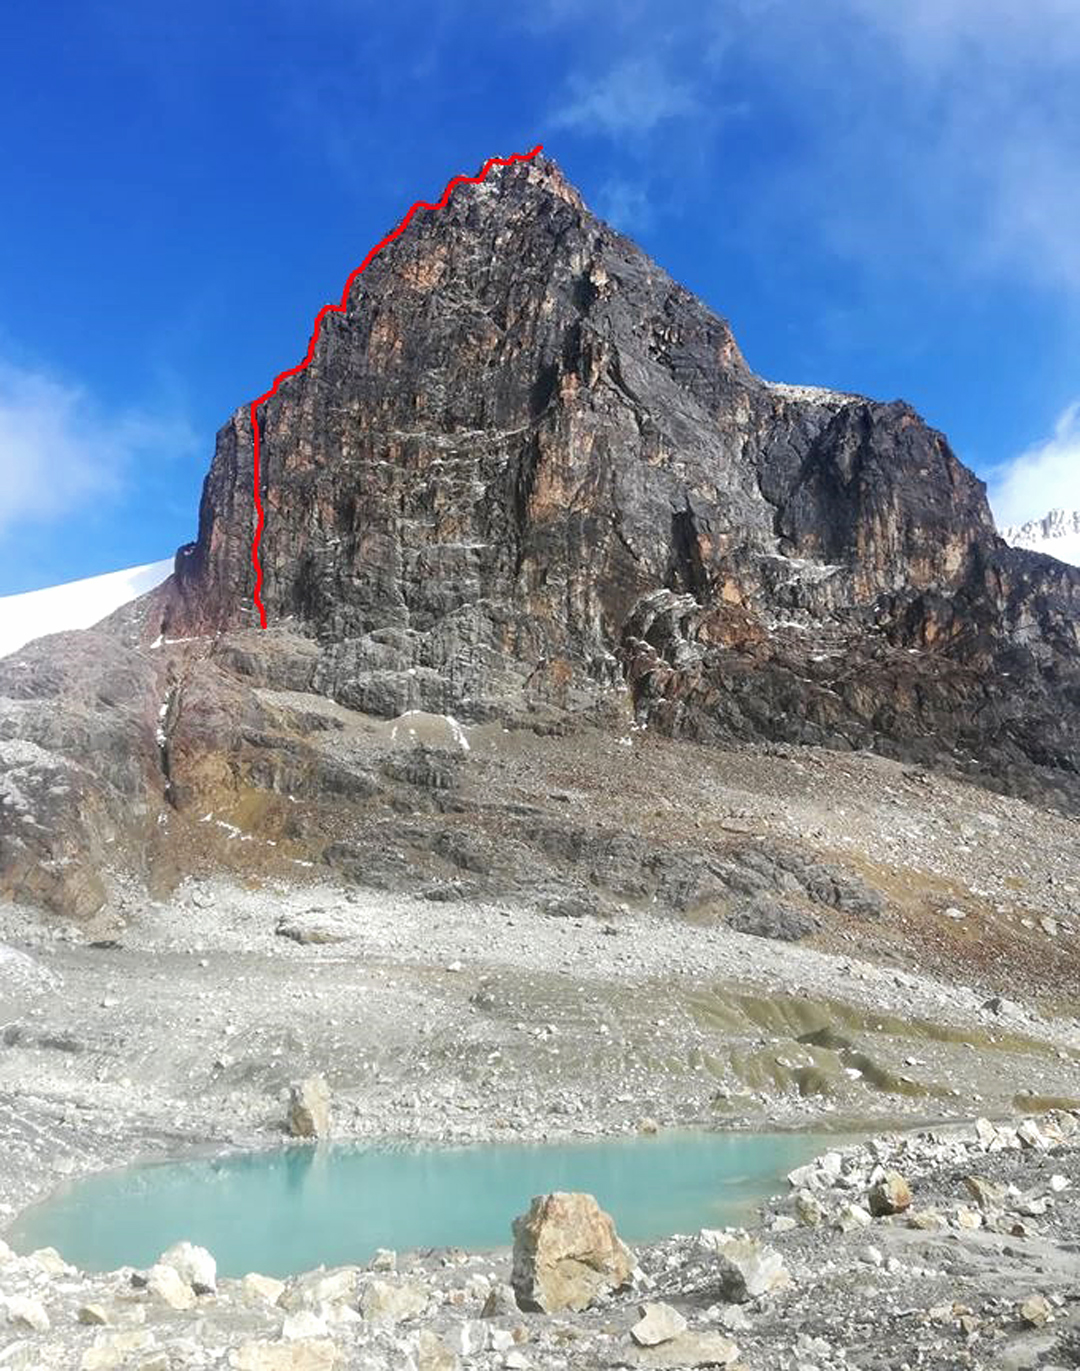 The southeast face of Charquini with the line of Le Chat. For other routes on the east face see AAJ 2019.